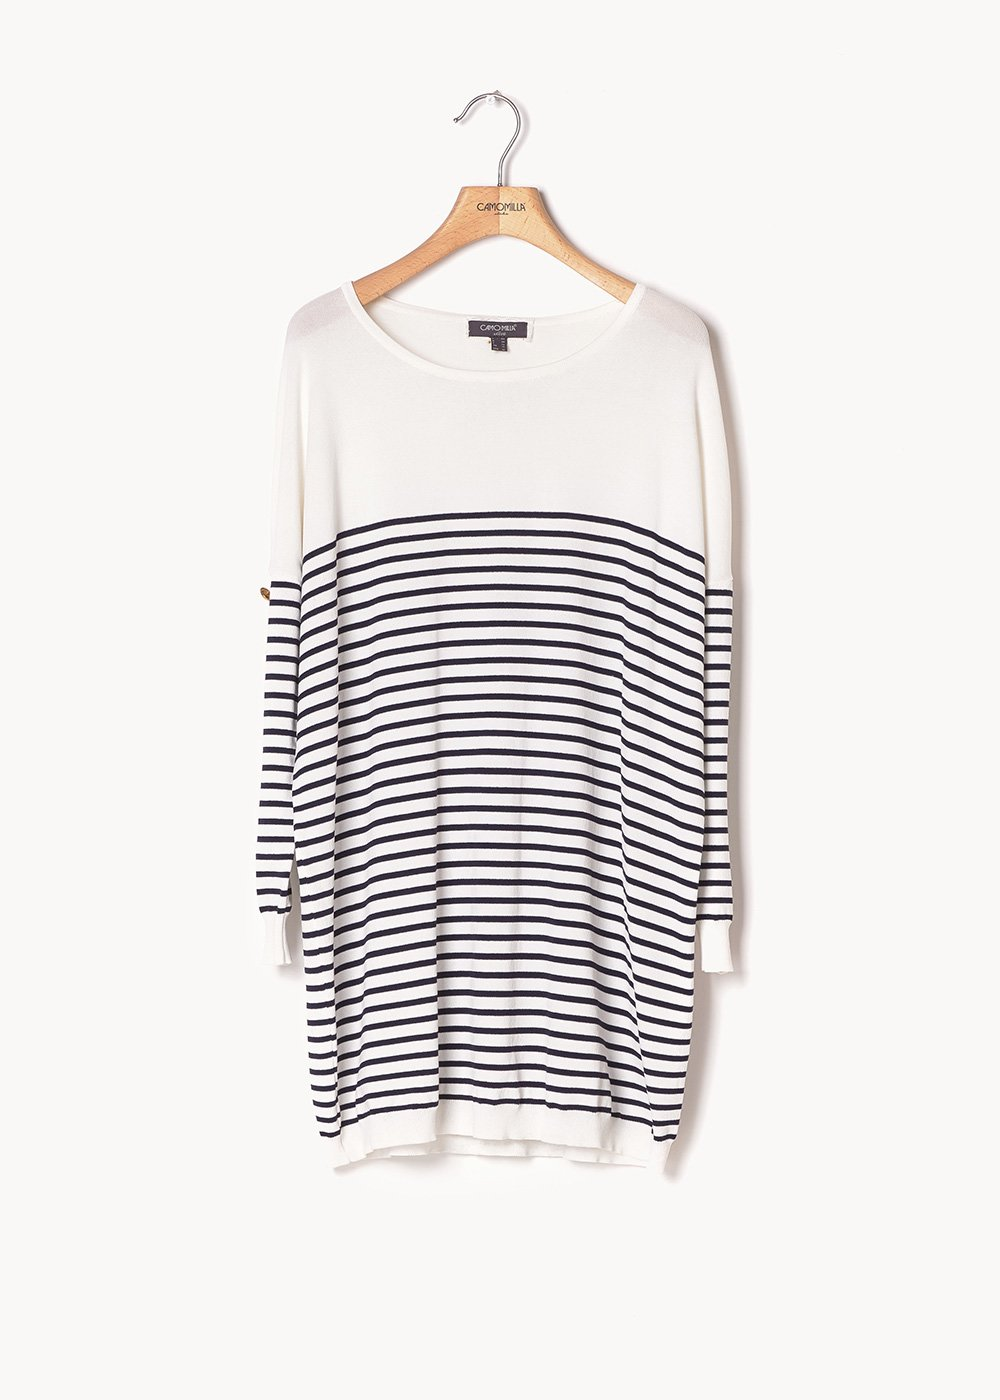 Maglia Meggy bicolore e bottoni oro - White / Blu / Stripes - Donna